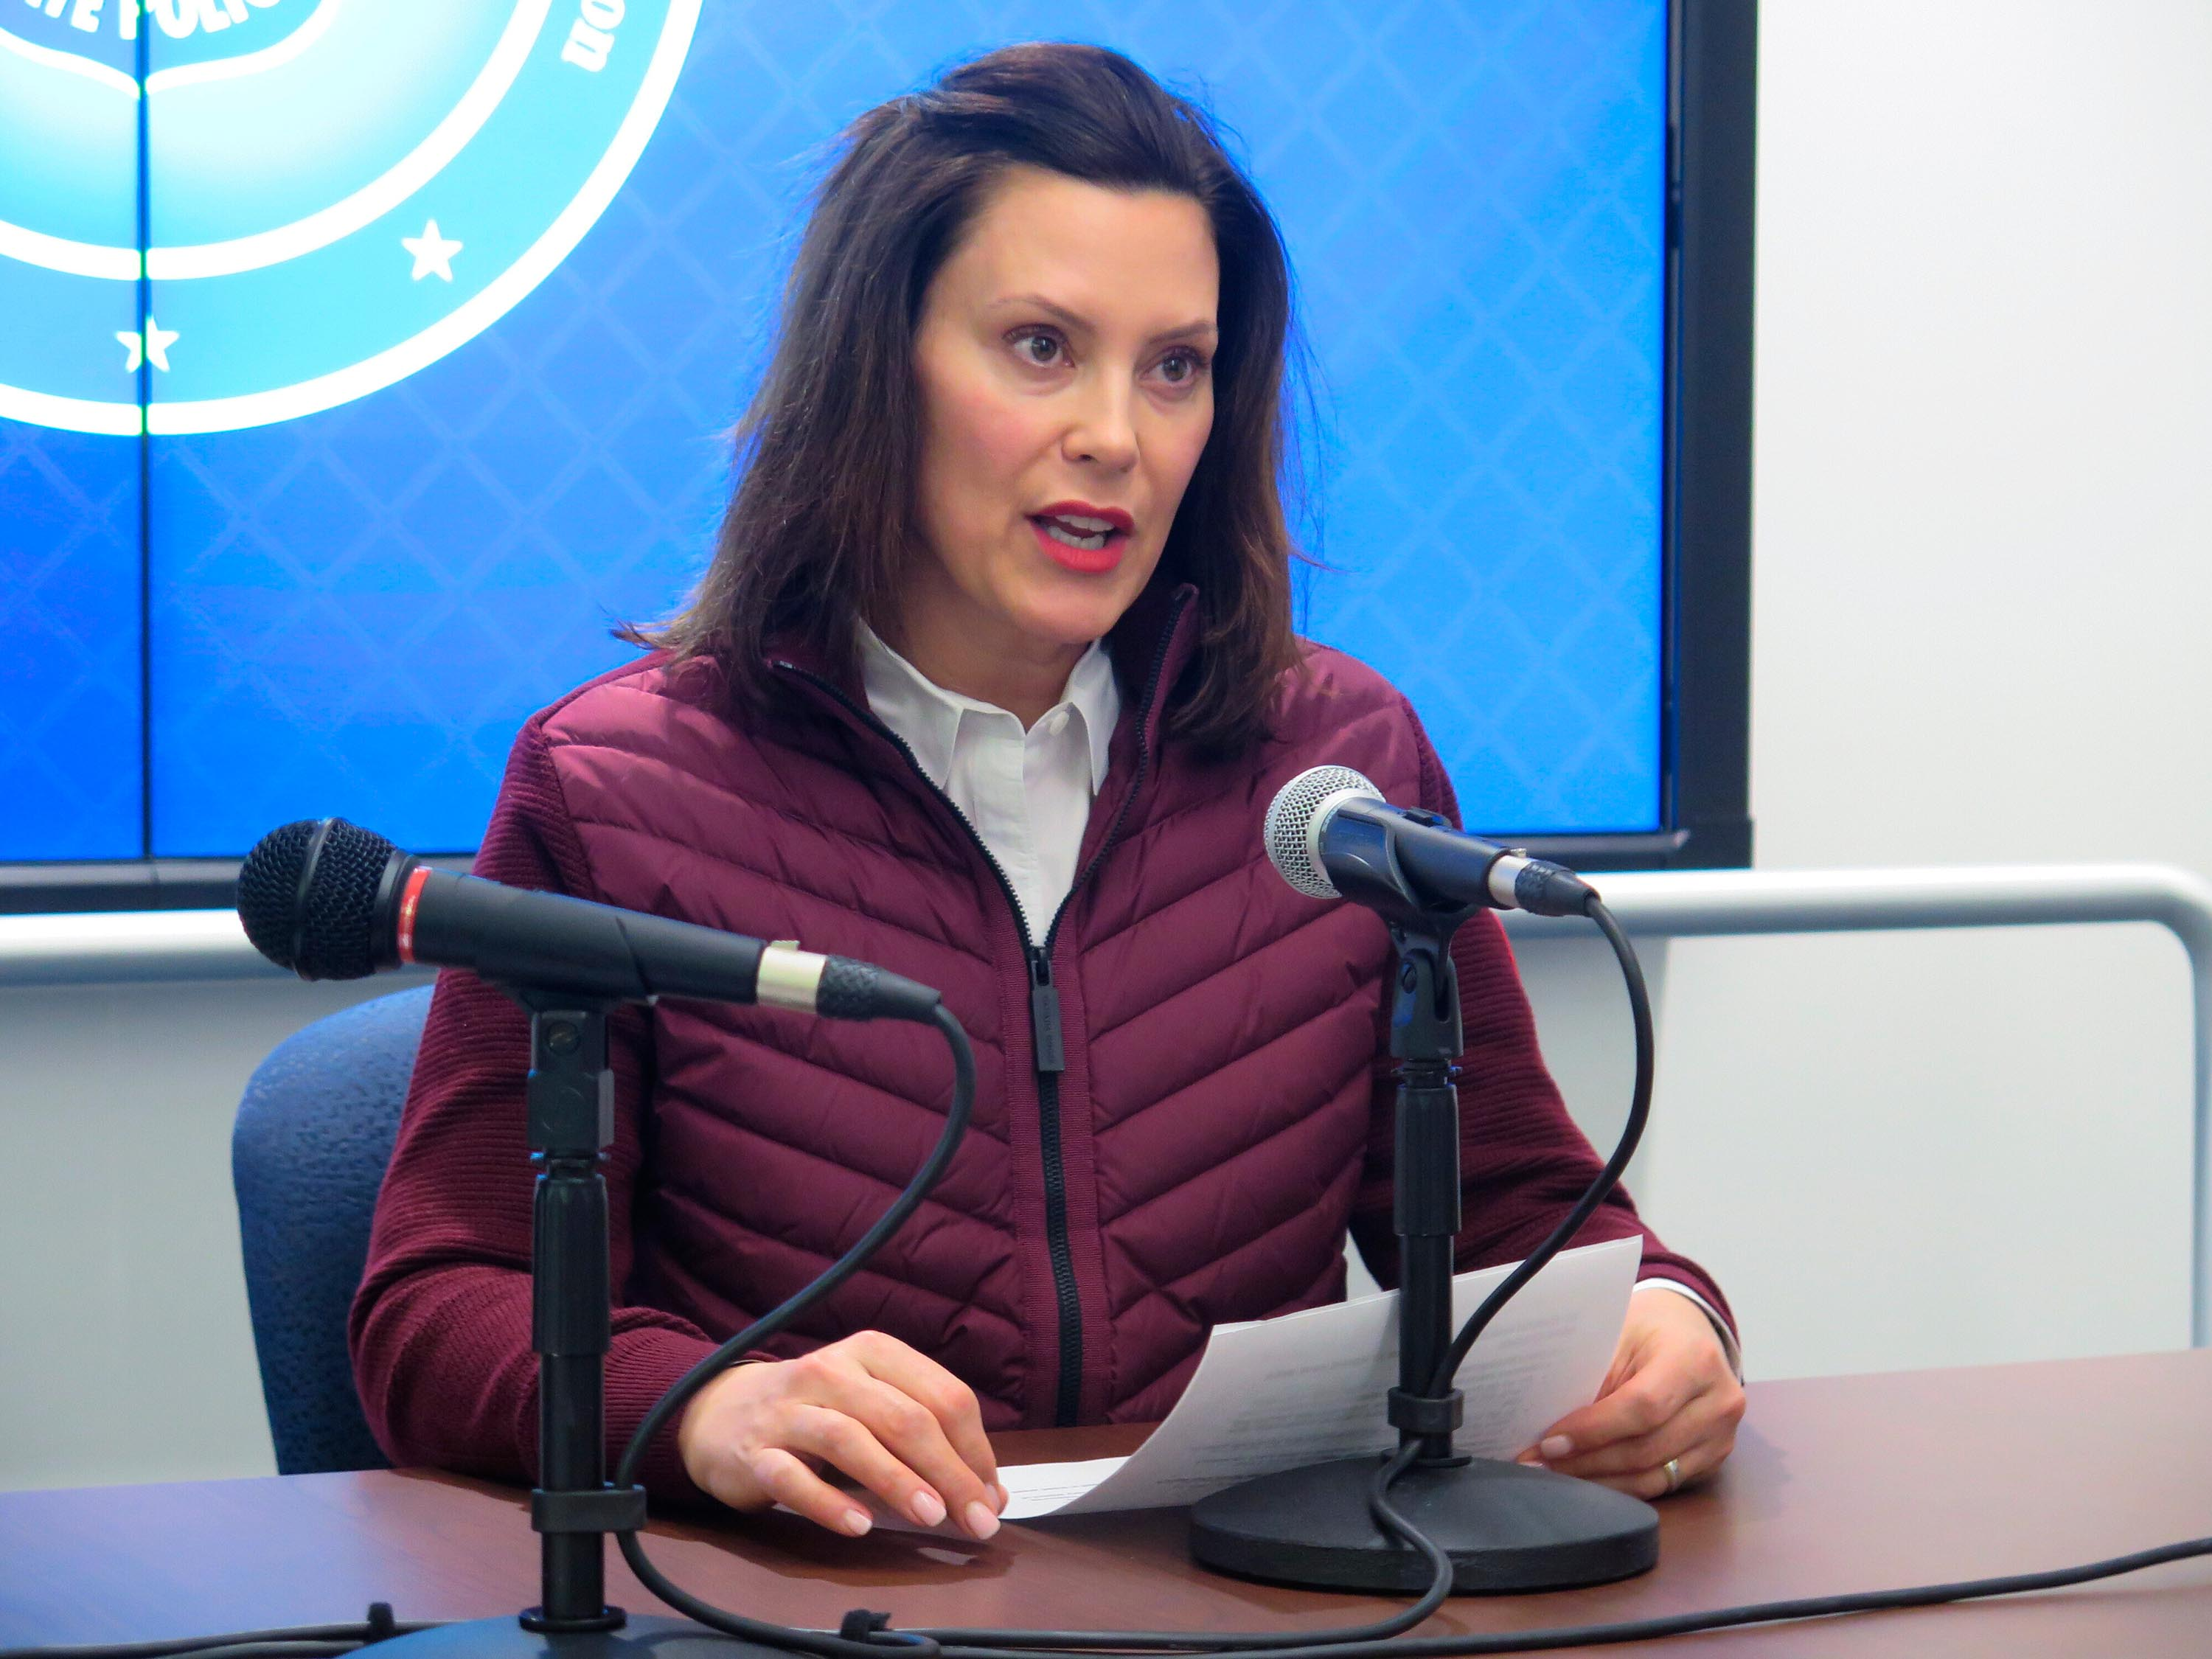 'That governor is me': Gretchen Whitmer takes on Trump as coronavirus cases rise in Michigan